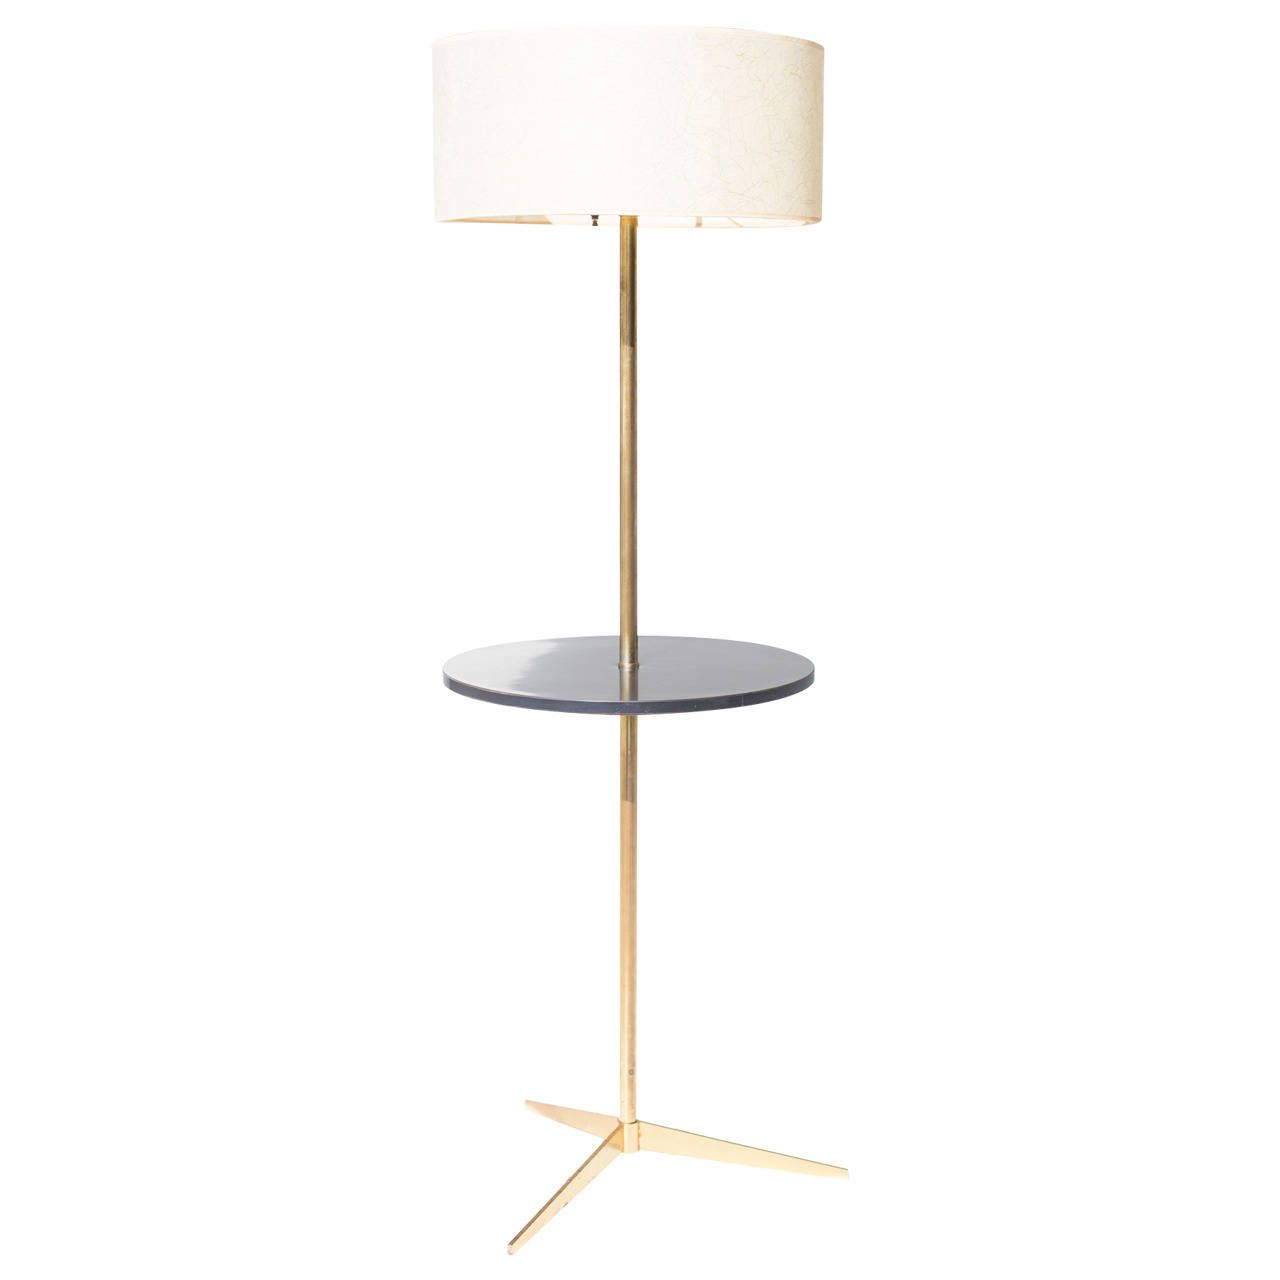 Antique floor lamp with table - Paul Mccobb Floor Lamp For Directional From A Unique Collection Of Antique And Modern Floor